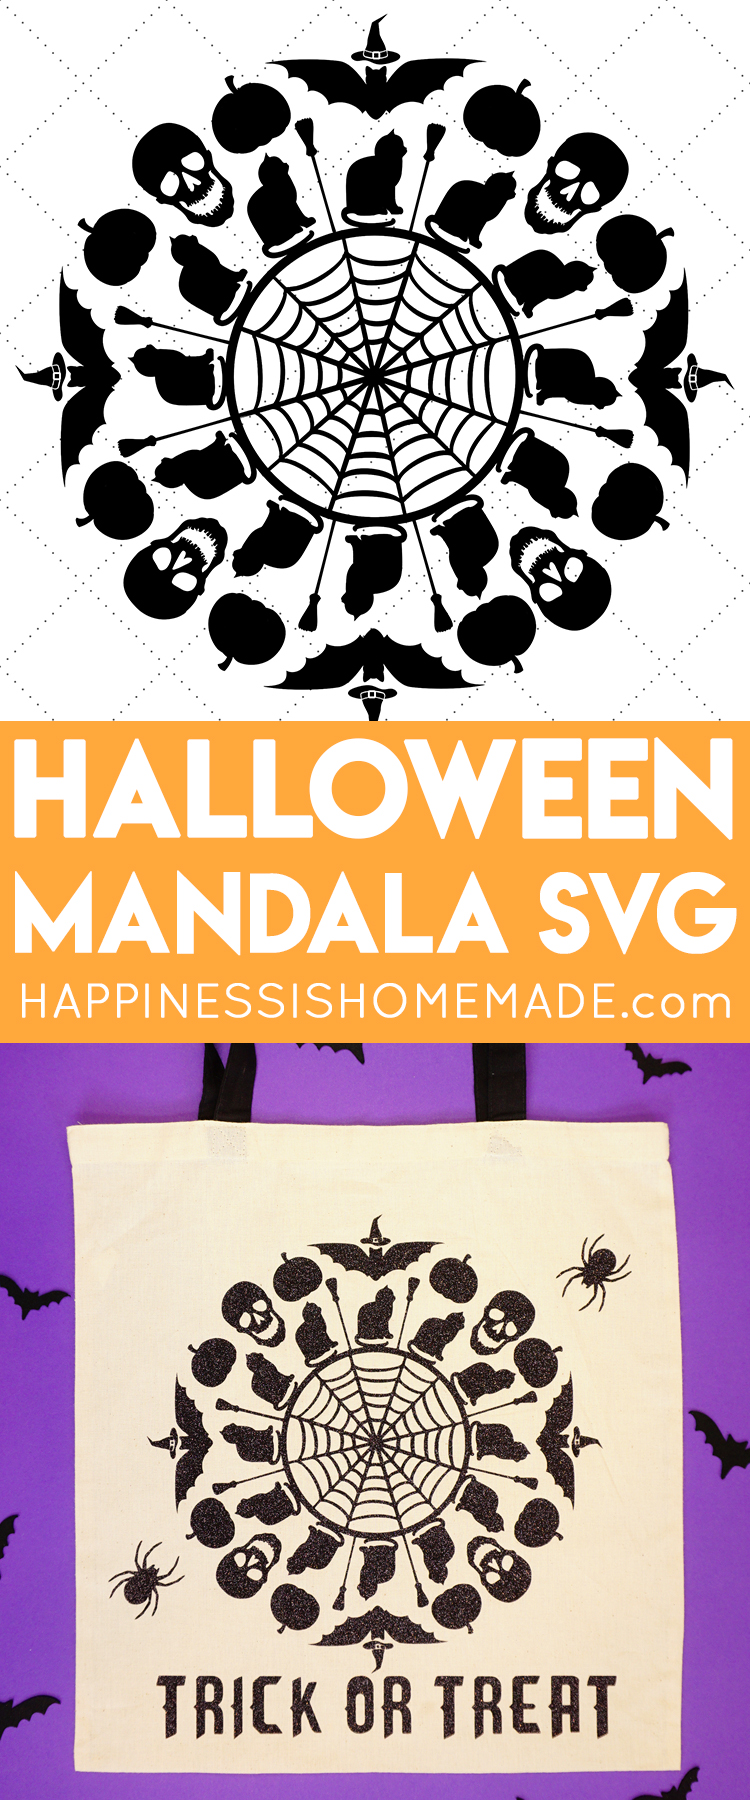 Halloween SVG File - Use this Spooky Mandala Halloween SVG file to Make an Awesome Halloween T-shirt or Trick or Treat Bag!